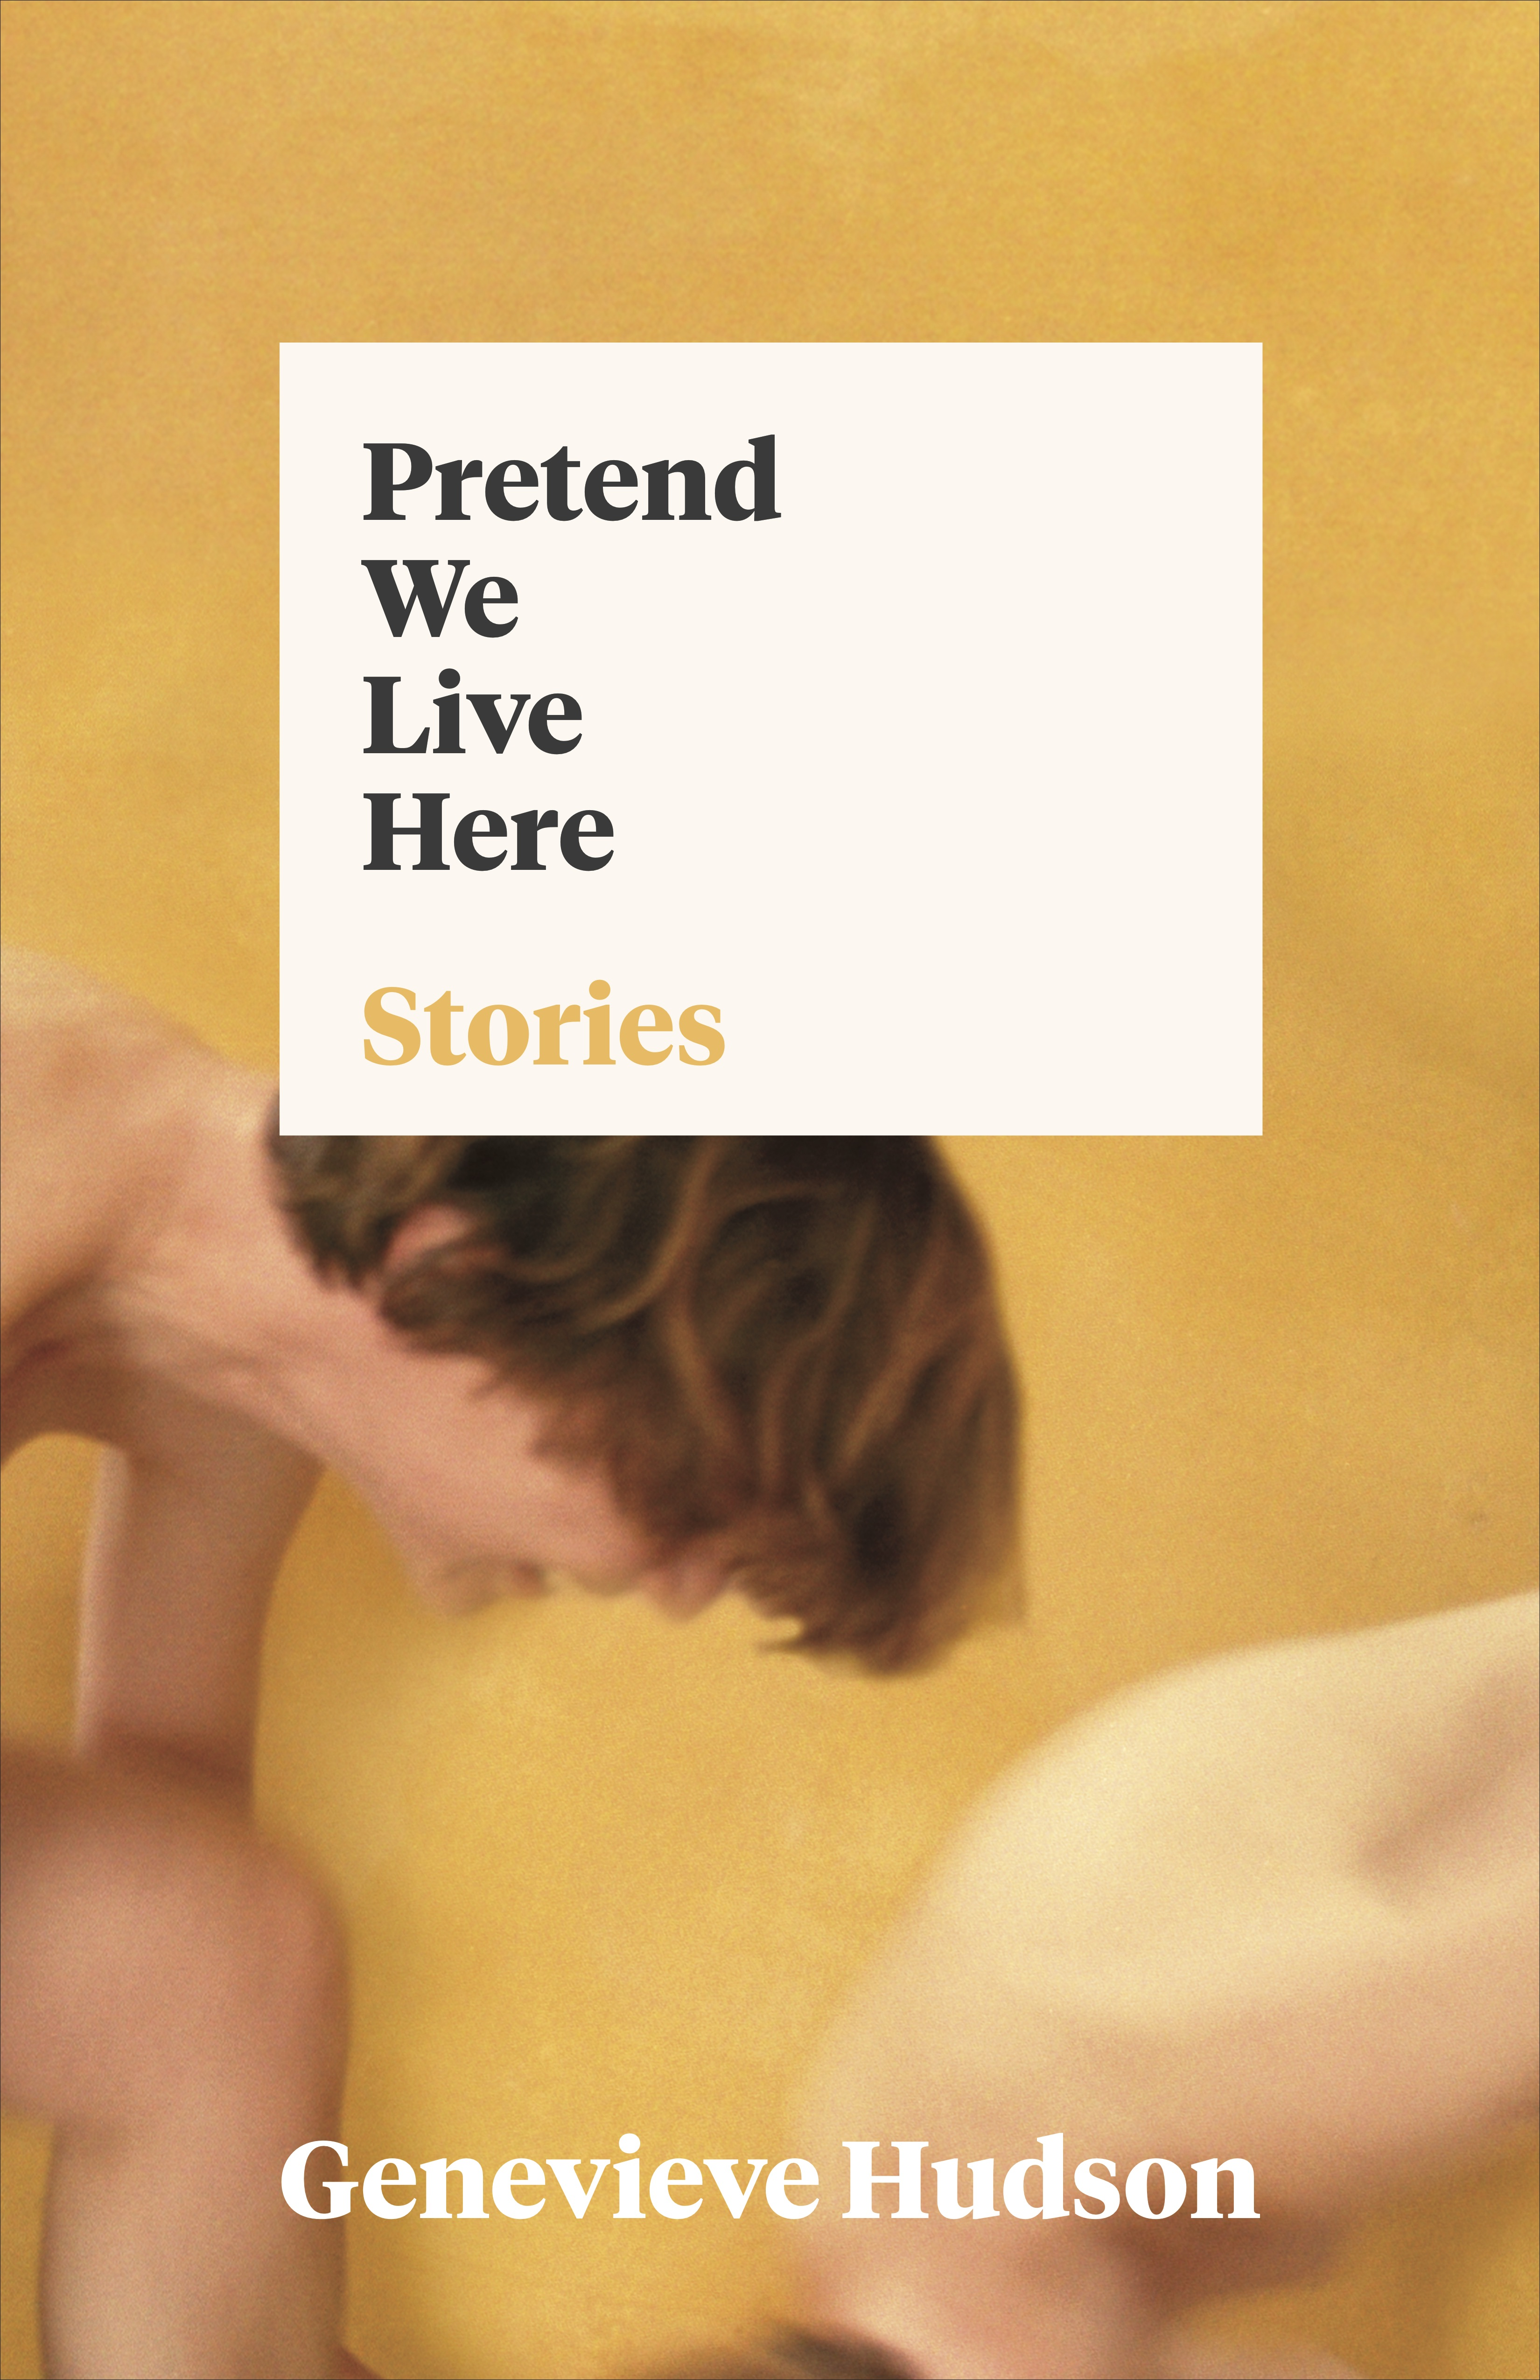 Book Launch & Reading: Pretend We Live Here by Genevieve Hudson — Featuring Readings by T Kira Madden, Alisson Wood, & more TBA